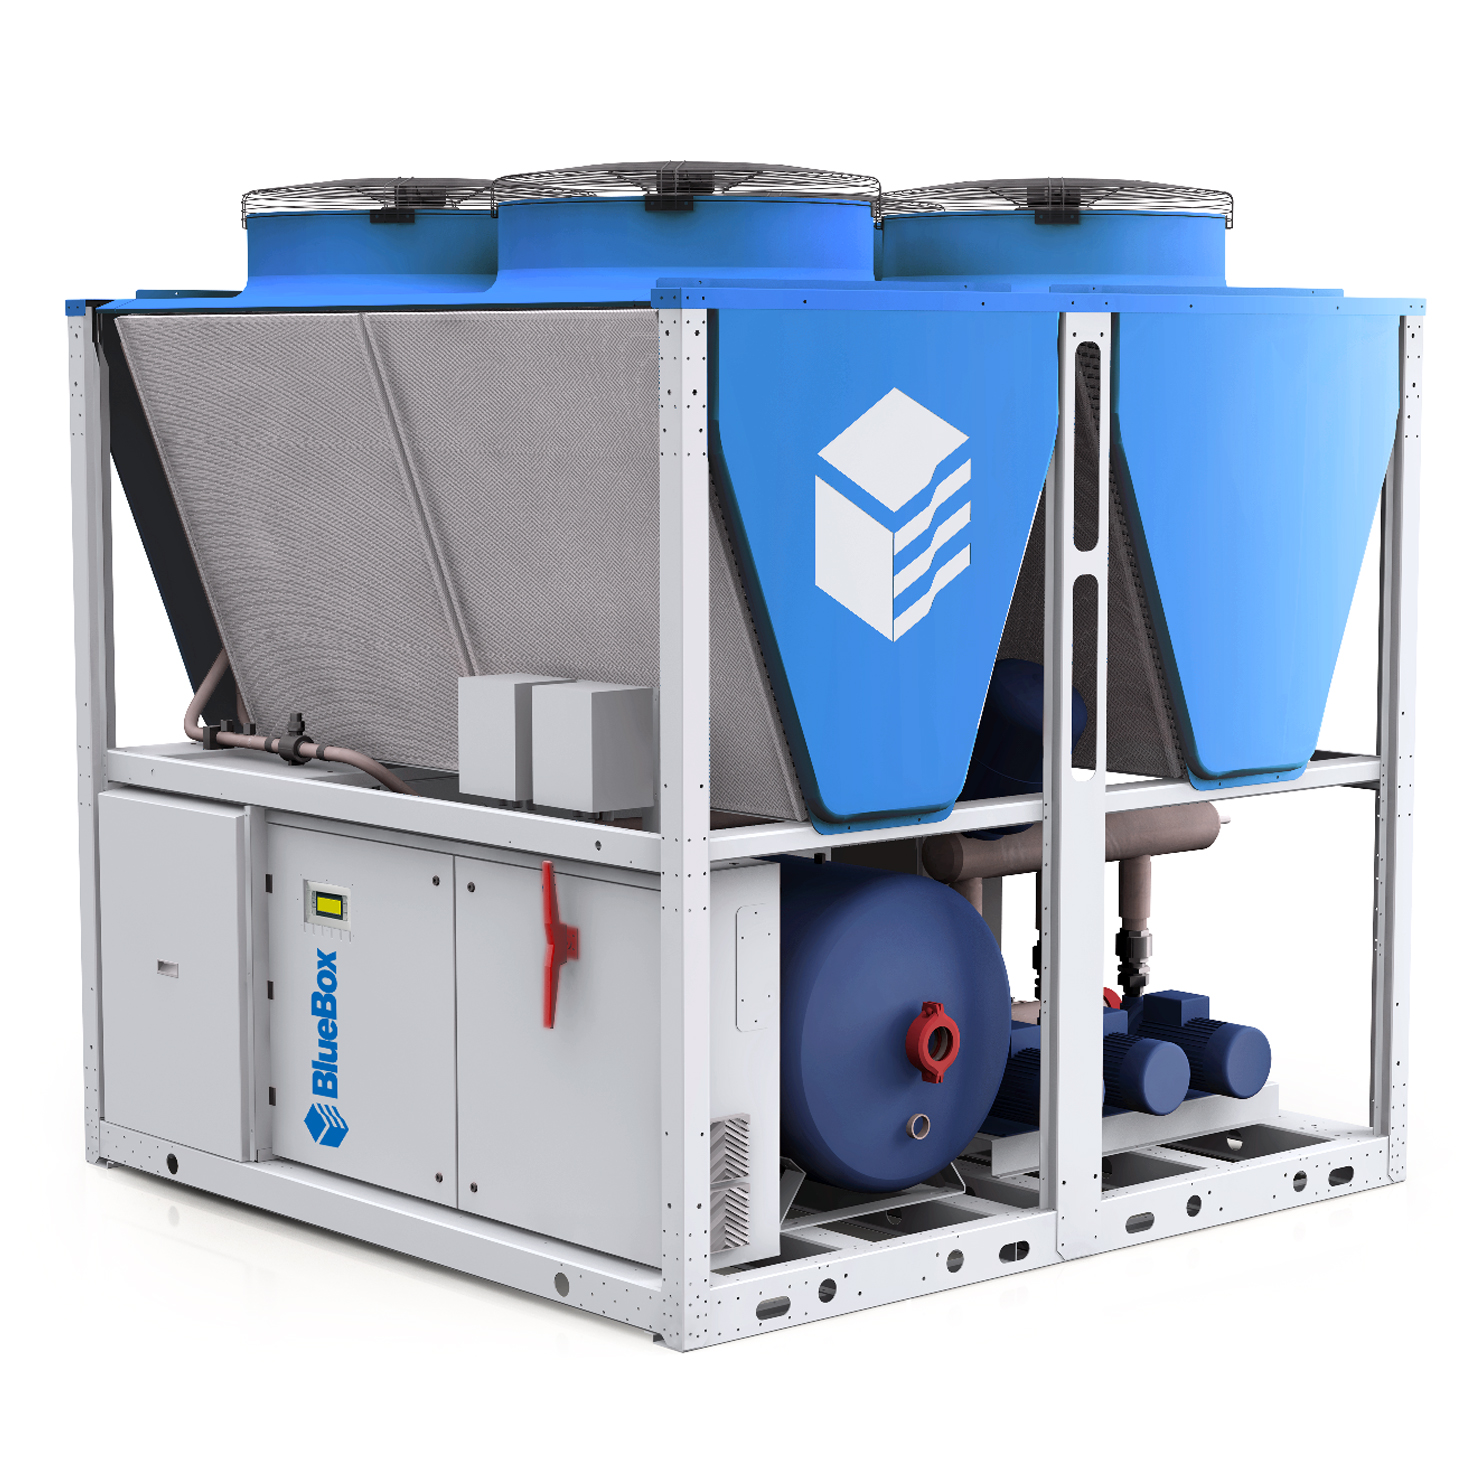 CHILLERS AND HEAT PUMPS